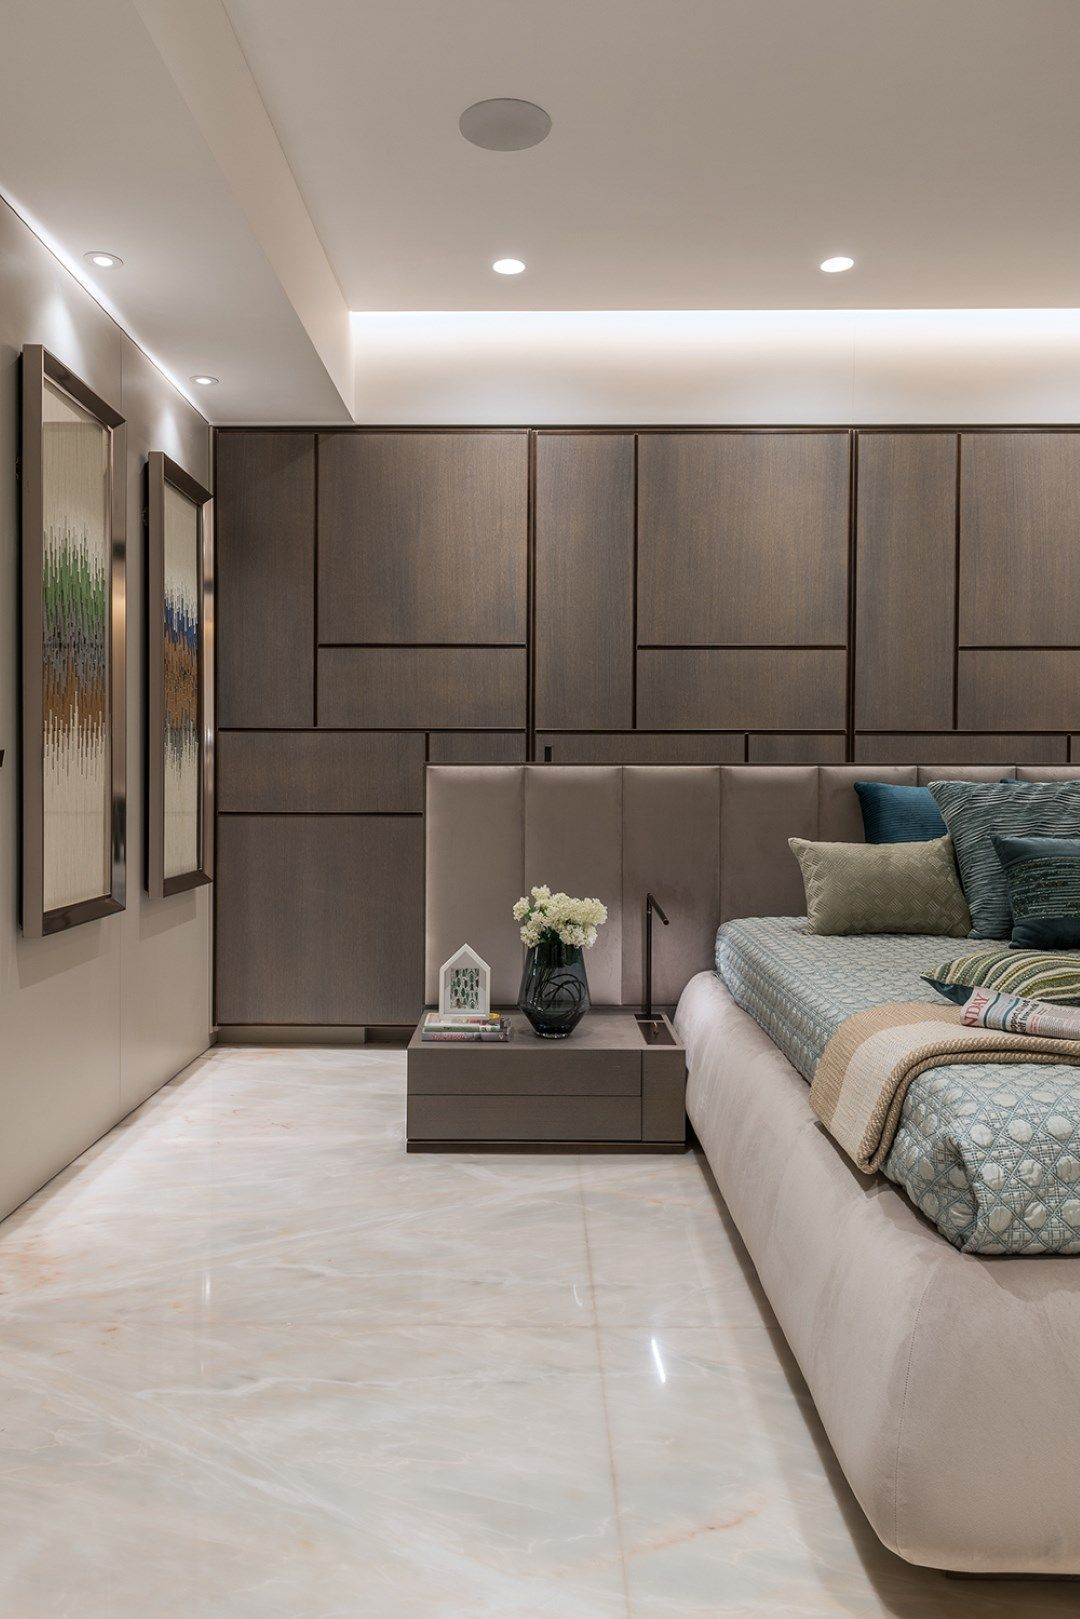 Simple Yet Luxurious Home Interiors Adda Architects The Architects Diary Bedroom Interior Luxury Home Decor Apartment Interior Simple luxury room design